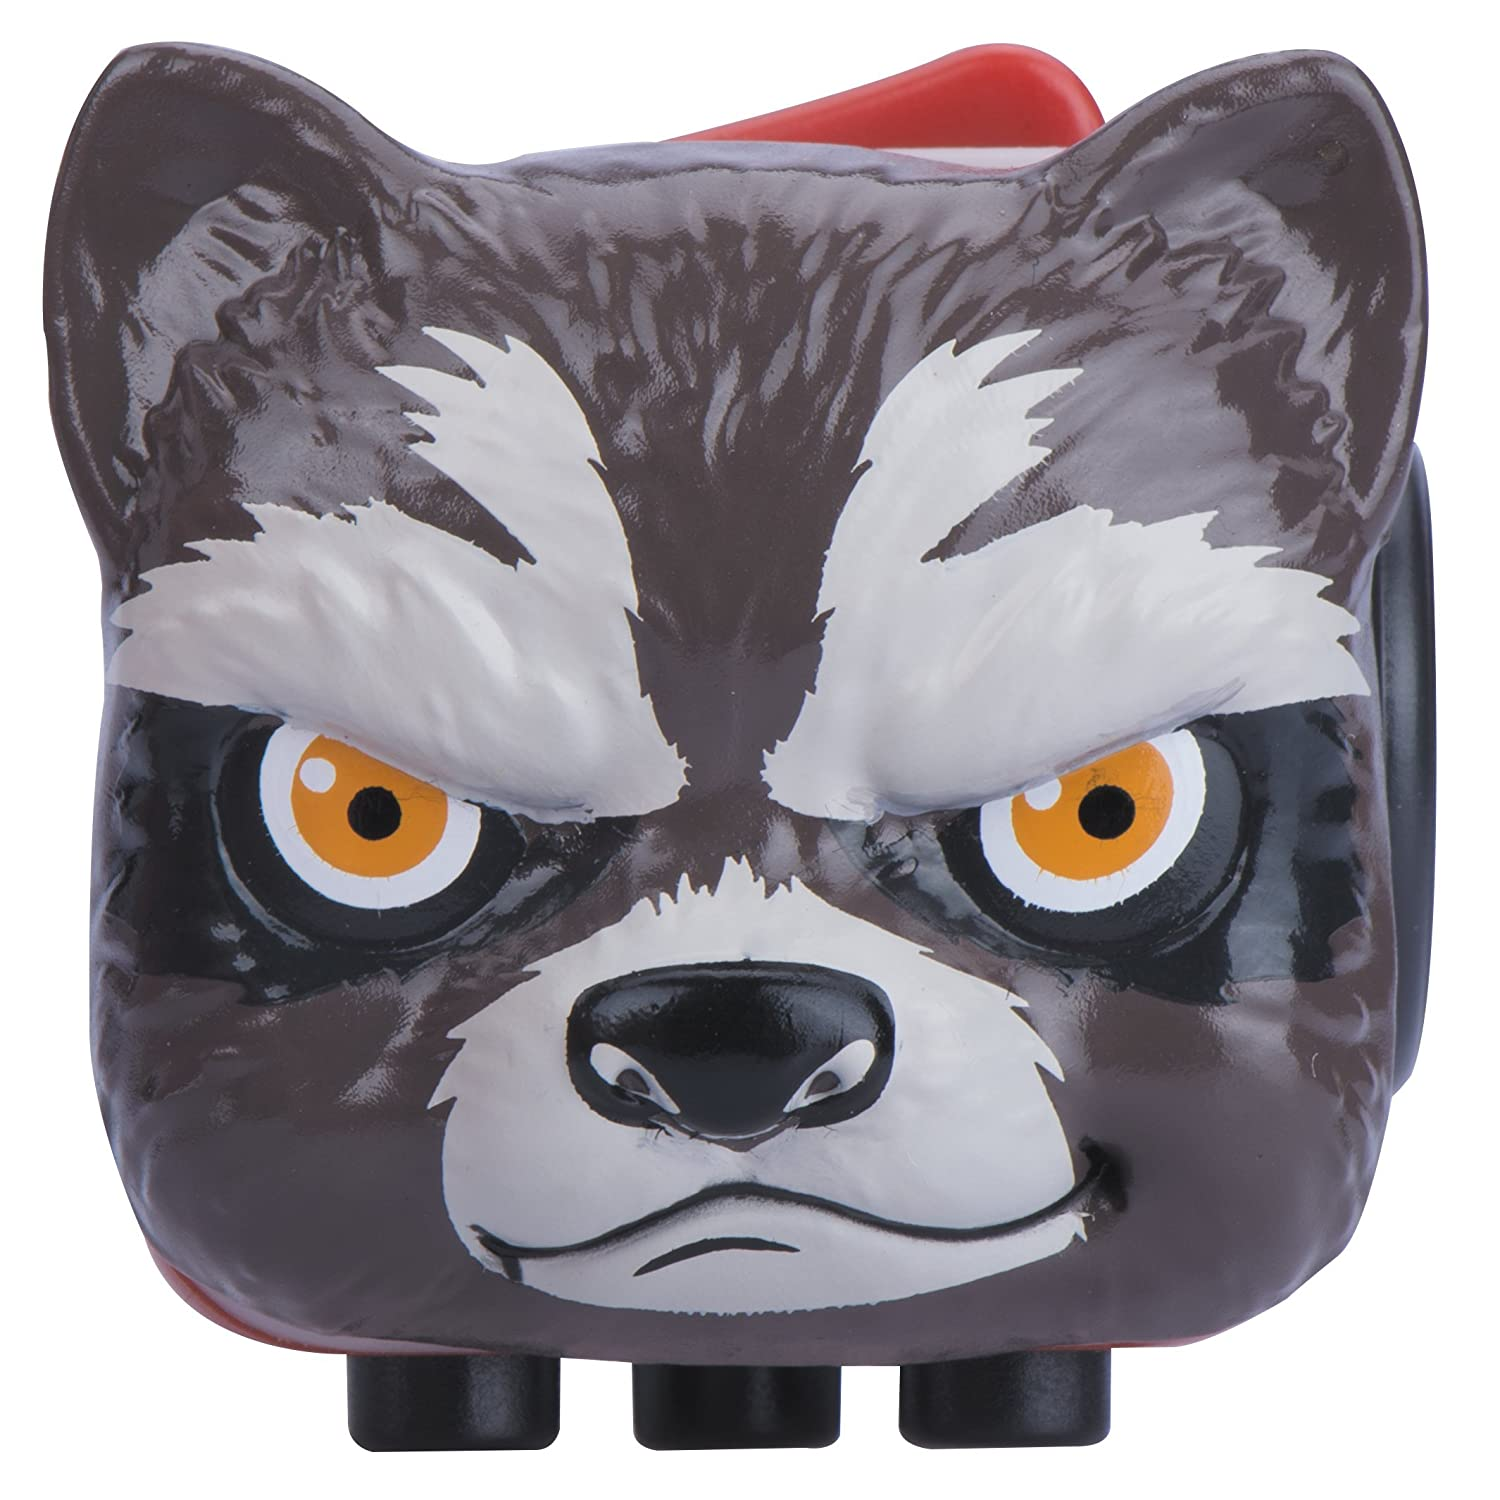 Antsy Labs Marvel Character Fidget Cube Rocket Raccoon Design - Six Functional Sides w/ Anxiety Relief Stone